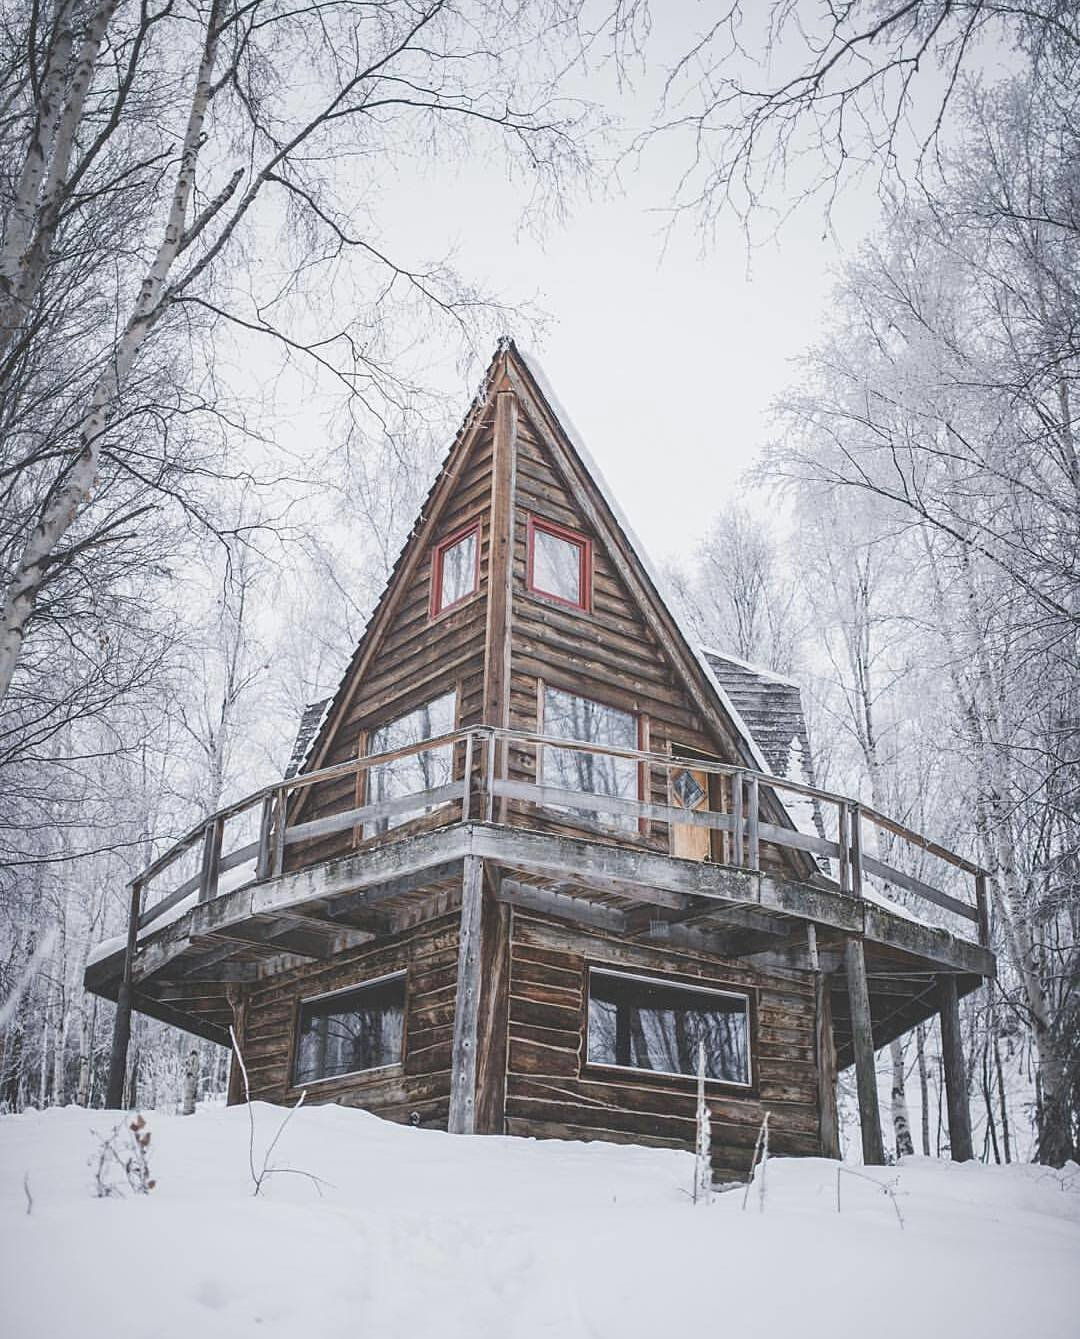 Photo 7 of 14 in 12 Cabin Escapes to Inspire Your Next Weekend Getaway